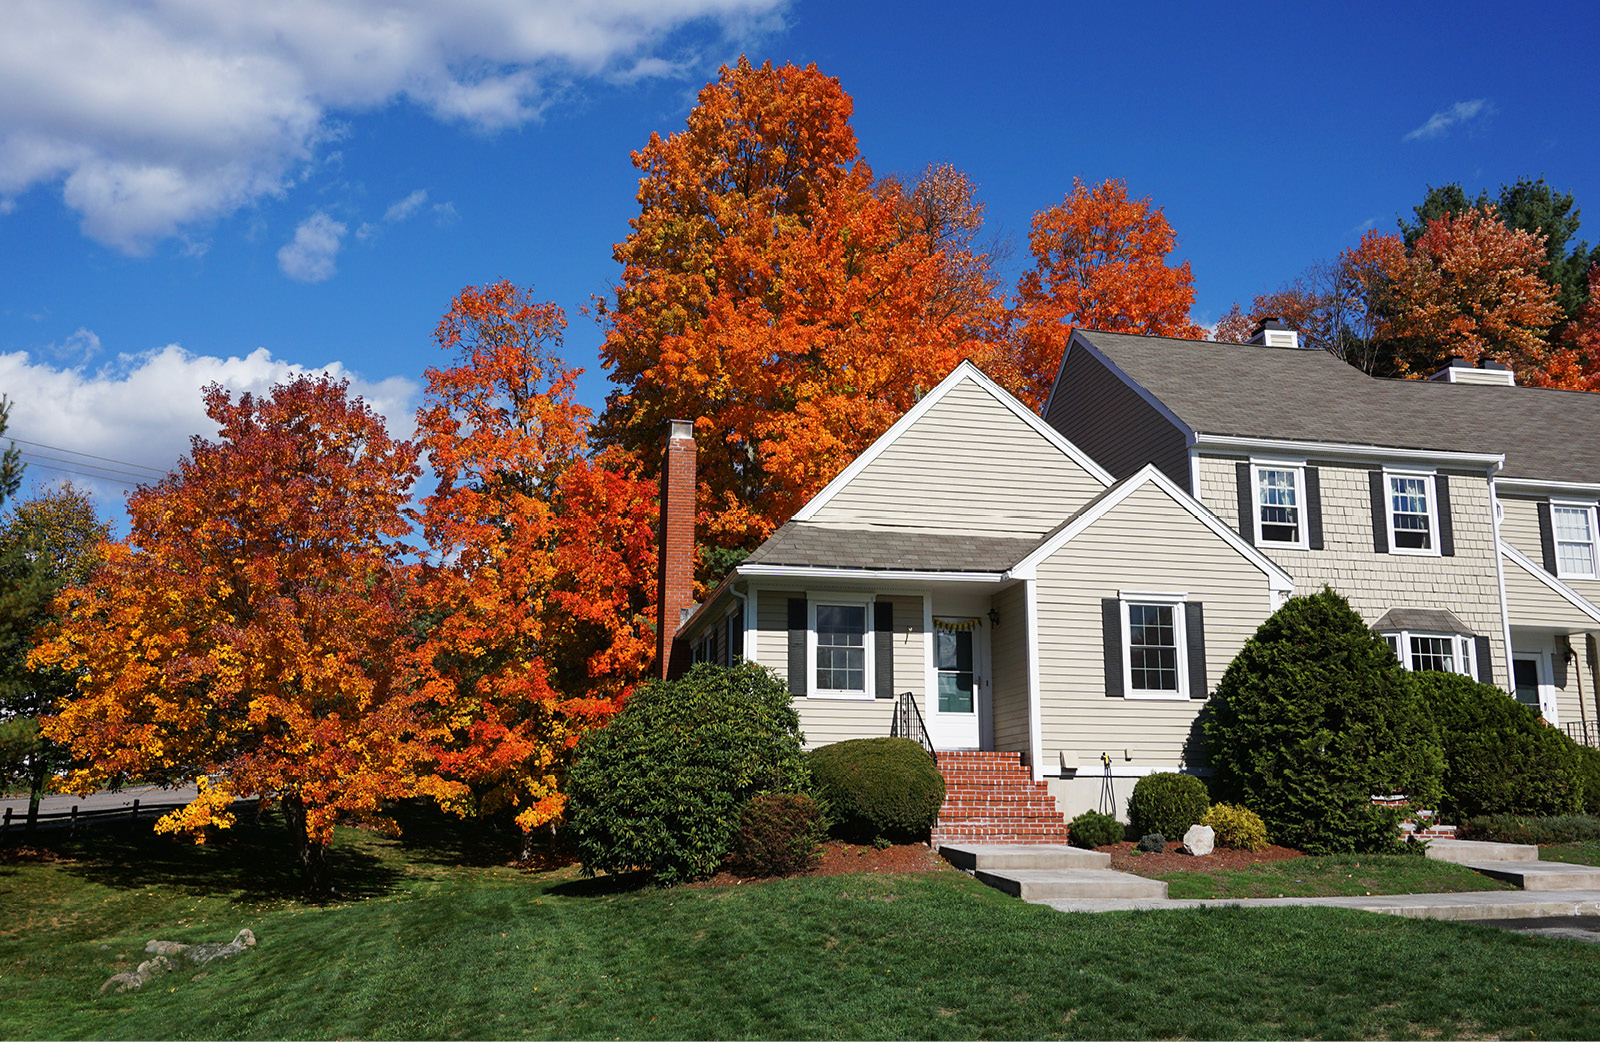 Image of a house/condo in the fall with foliage.